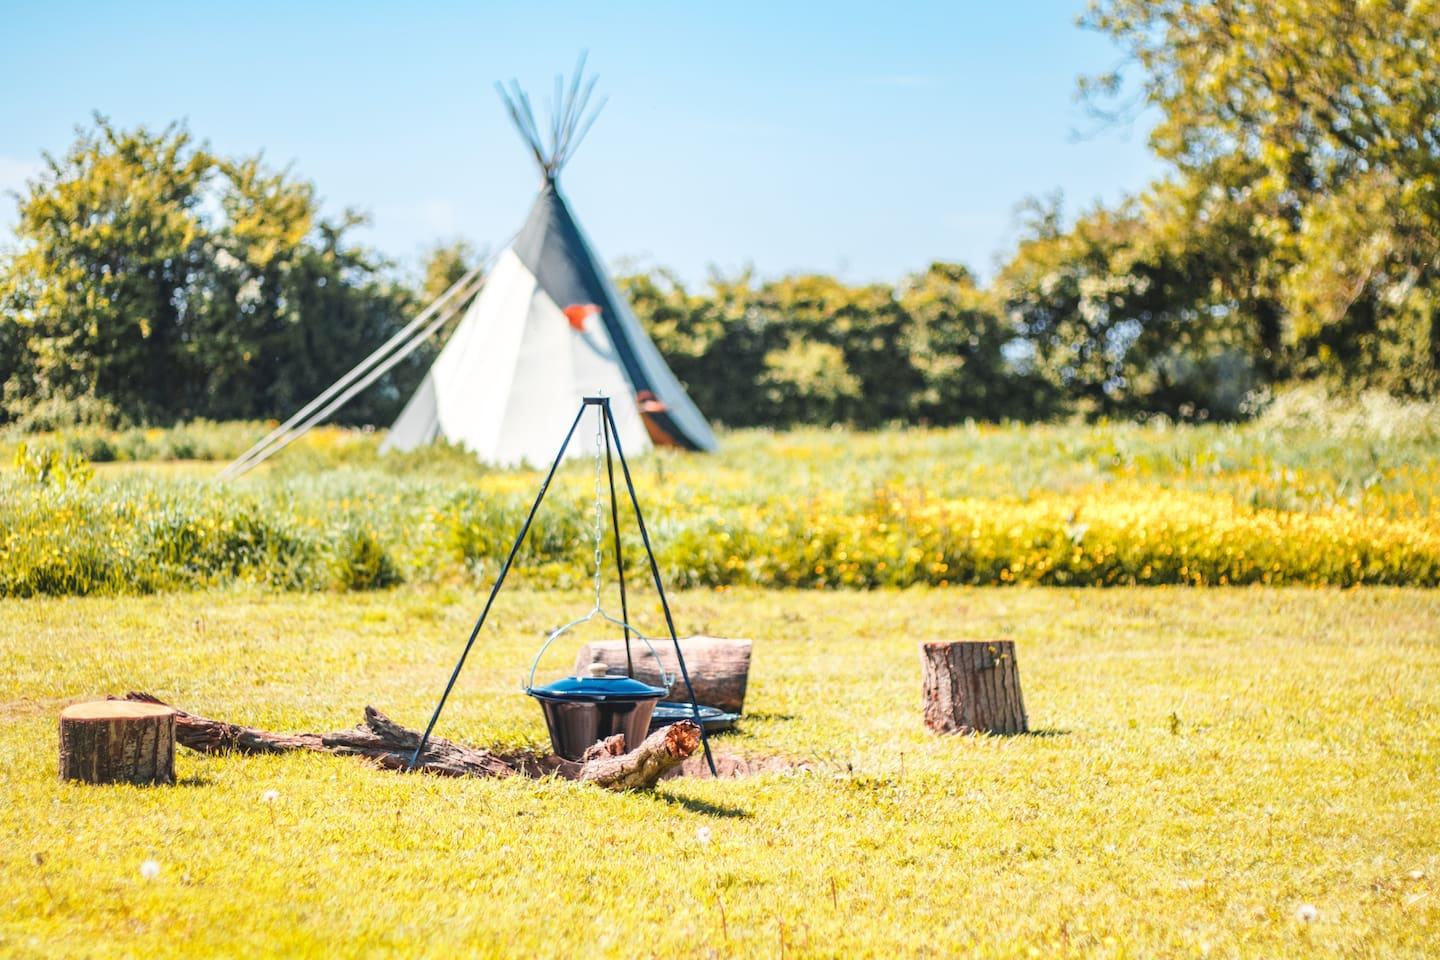 Each Tipi has its own camp fire set up to cook, and a wood burning stove inside to keep warm and cosy in the night.